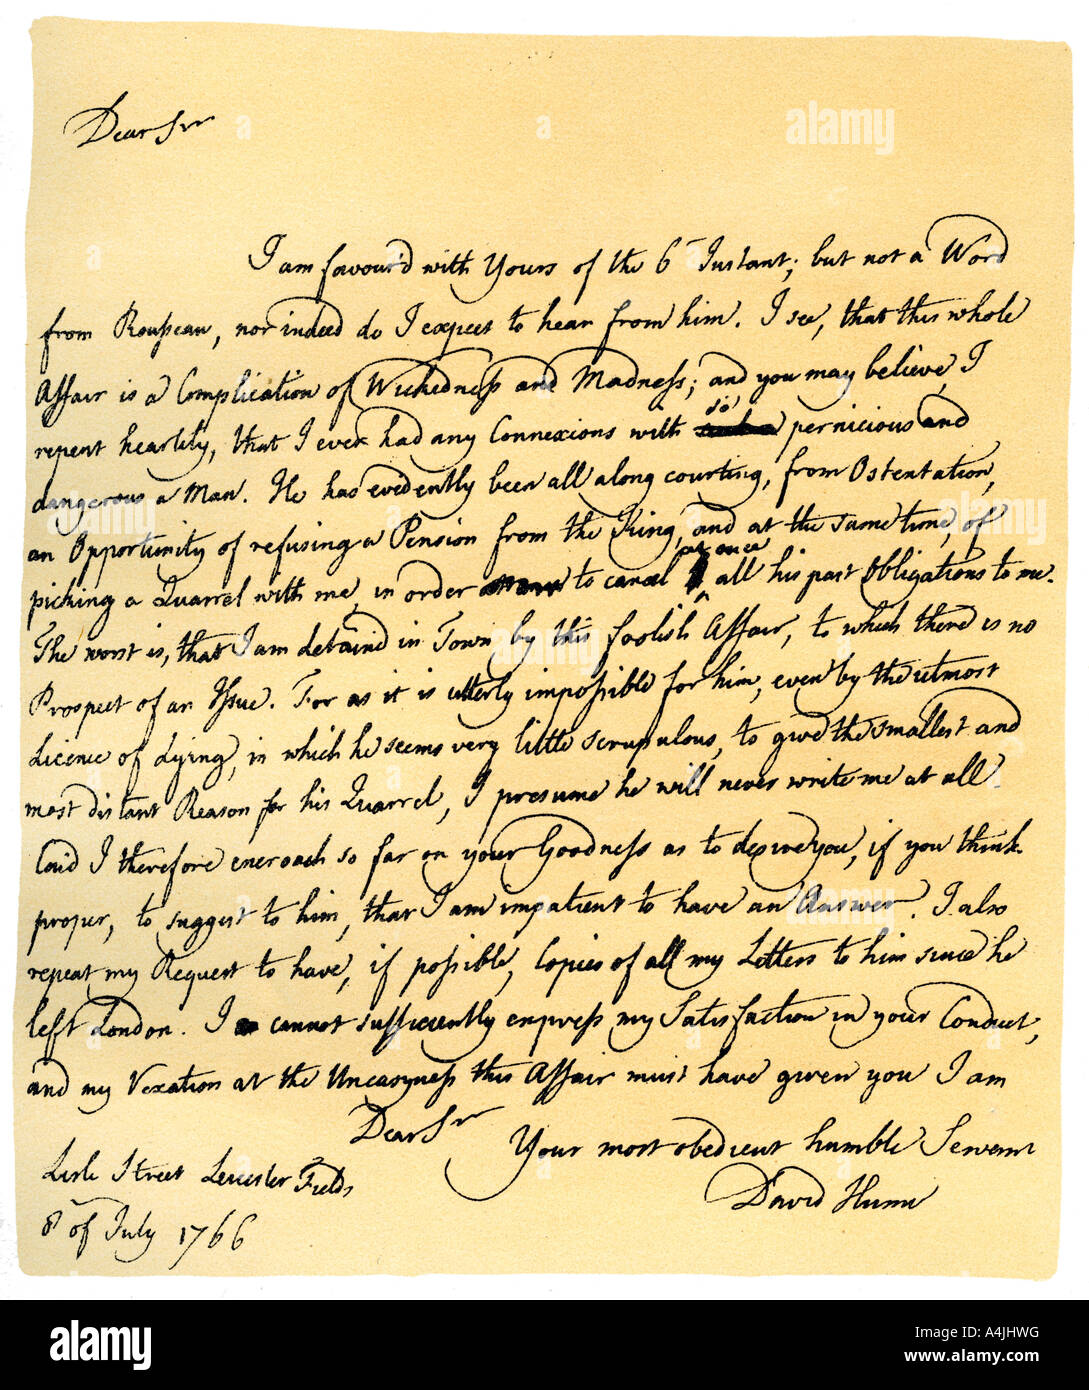 david hume stock photos david hume stock images alamy letter from david hume to richard davenport 8th 1766 stock image